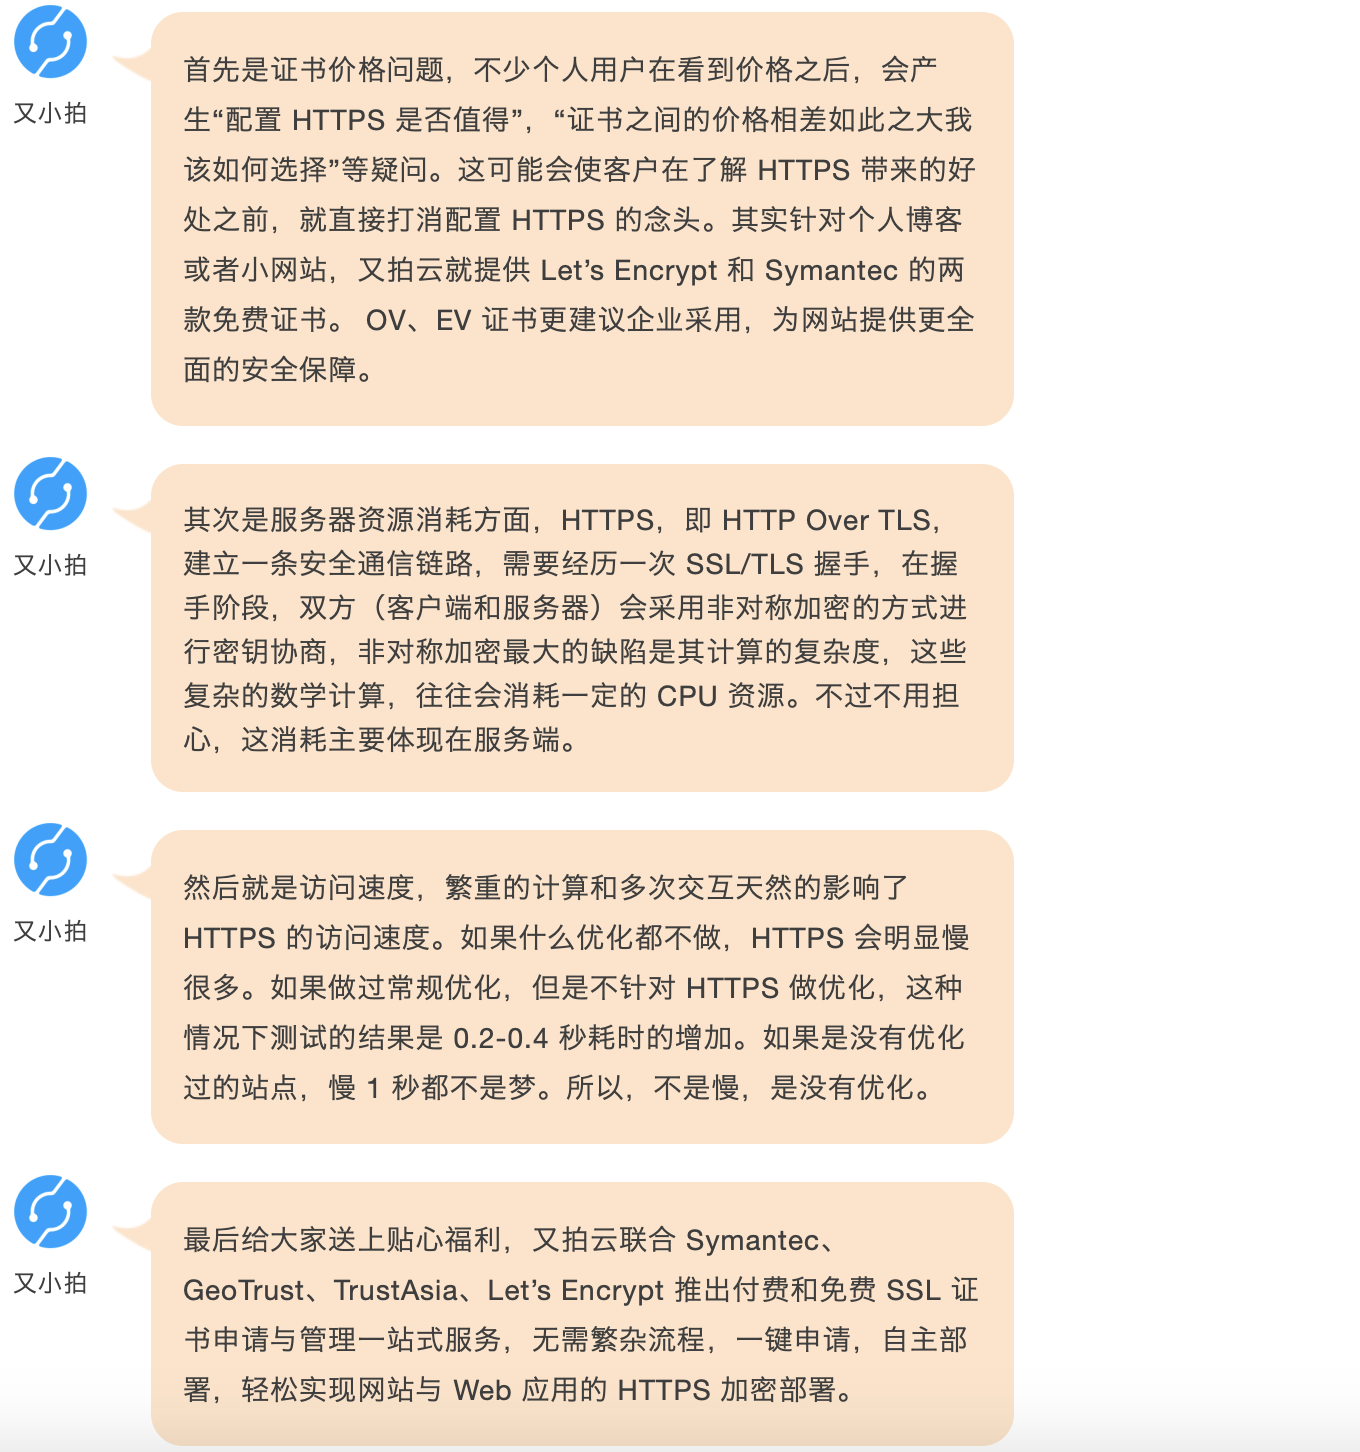 WX20190527-141136@2x.png